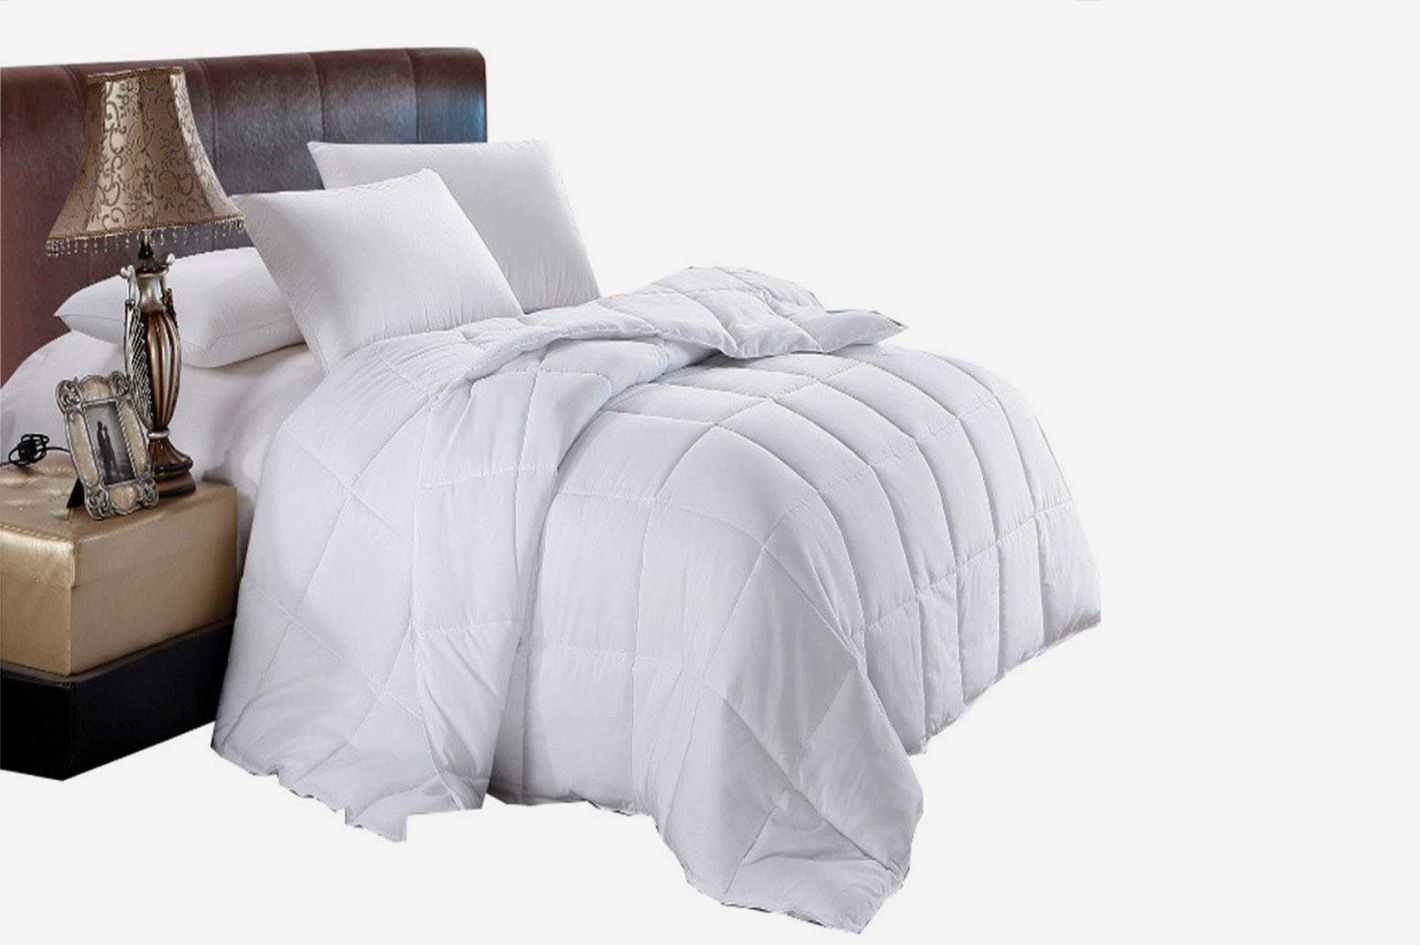 Royal Hotel Down-Alternative Comforter